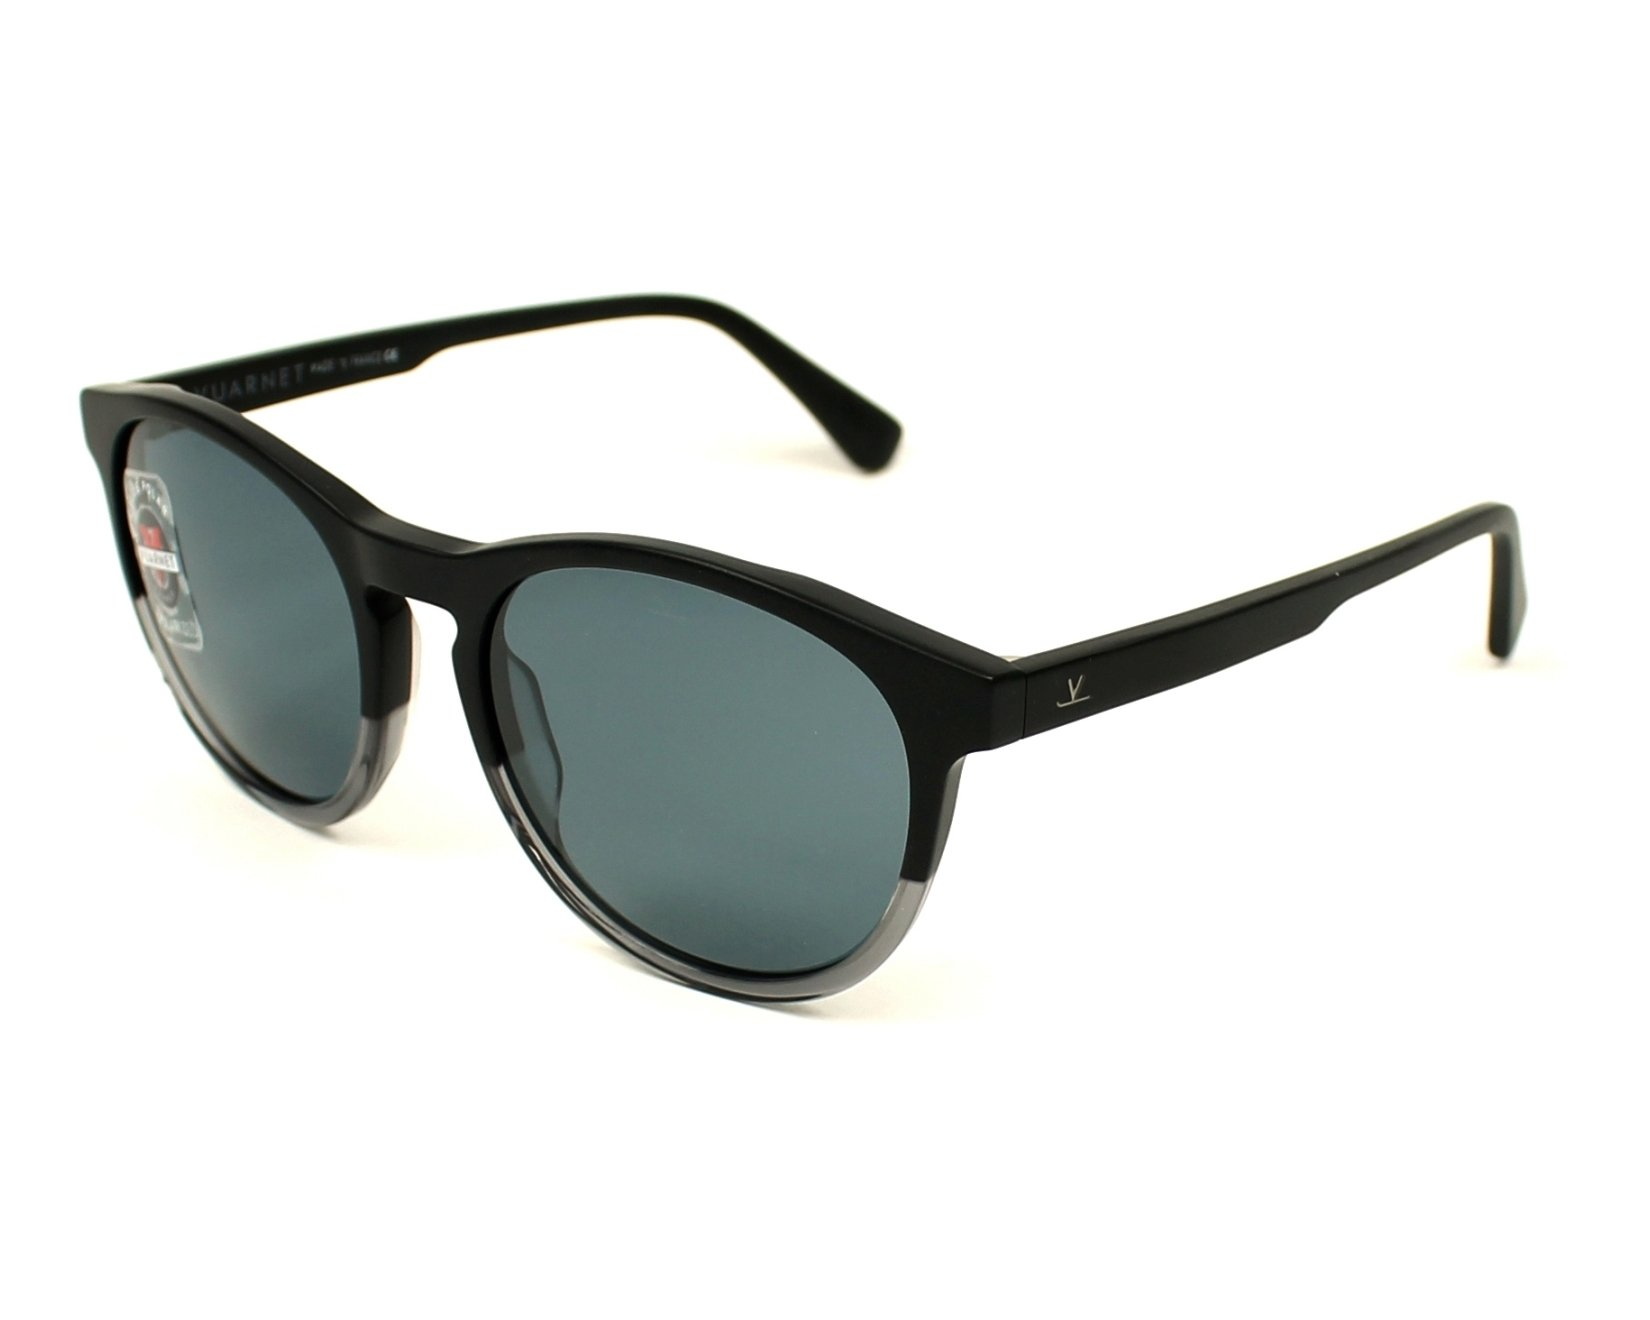 df60e58e4b3 Polarized. Sunglasses Vuarnet VL-1616 0002-0622 51-17 Black Black profile  view